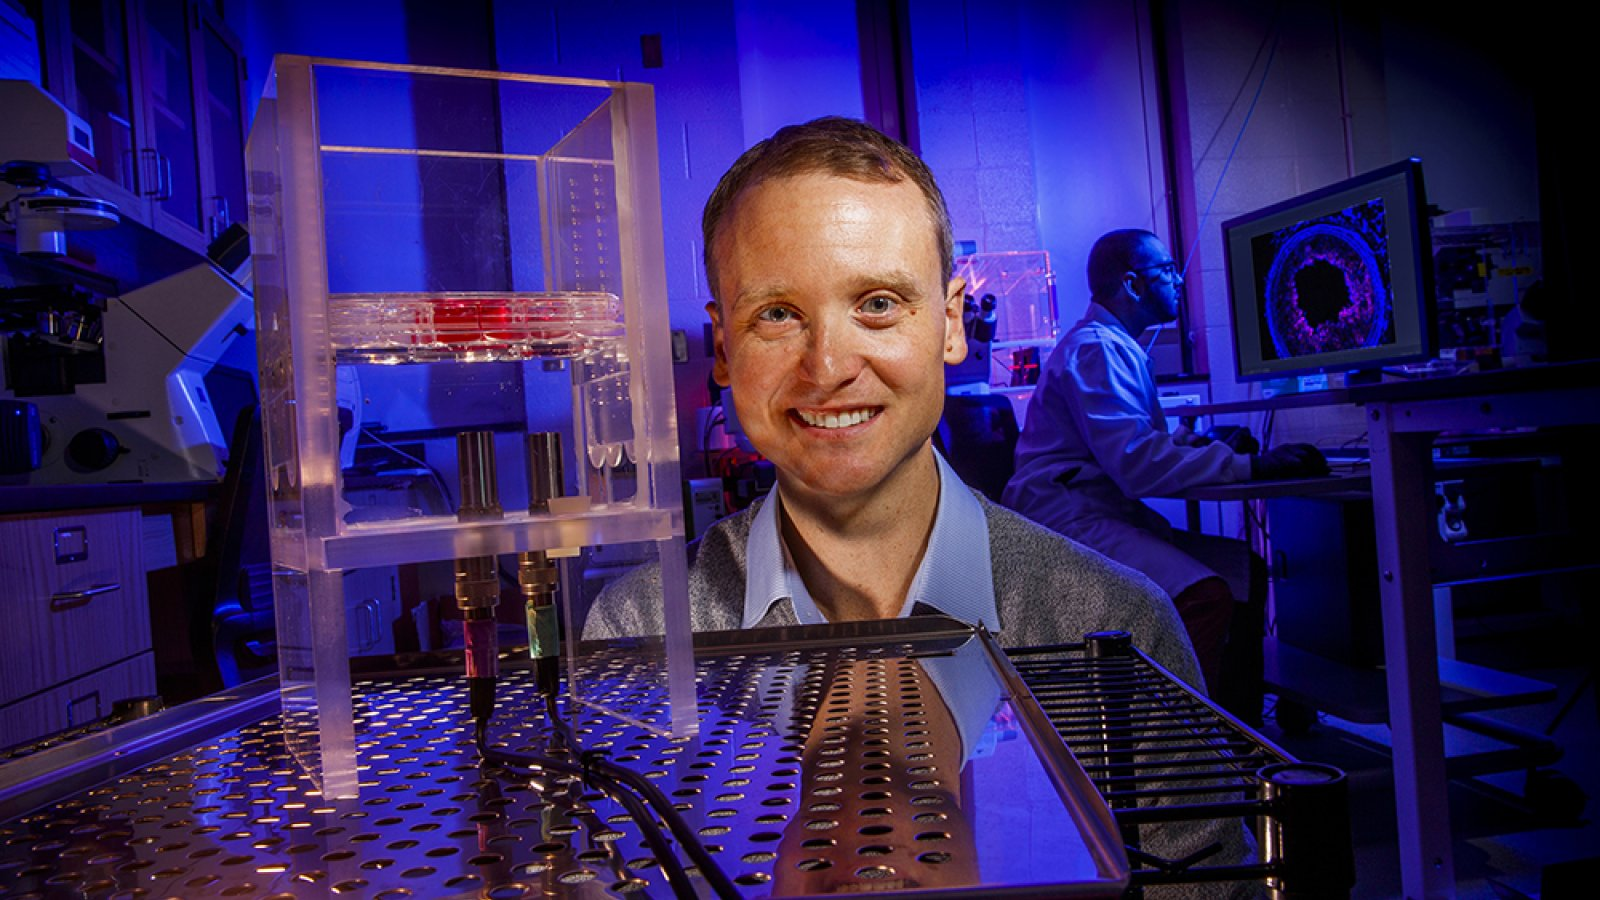 Ryan Pedrigi, assistant professor of mechanical and materials engineering at the University of Nebraska–Lincoln, will use a five-year, $543,000 award from the National Science Foundation's Faculty Early Career Development Program to lay the groundwork for a targeted, noninvasive treatment for atherosclerosis. (Craig Chandler / University Communication)